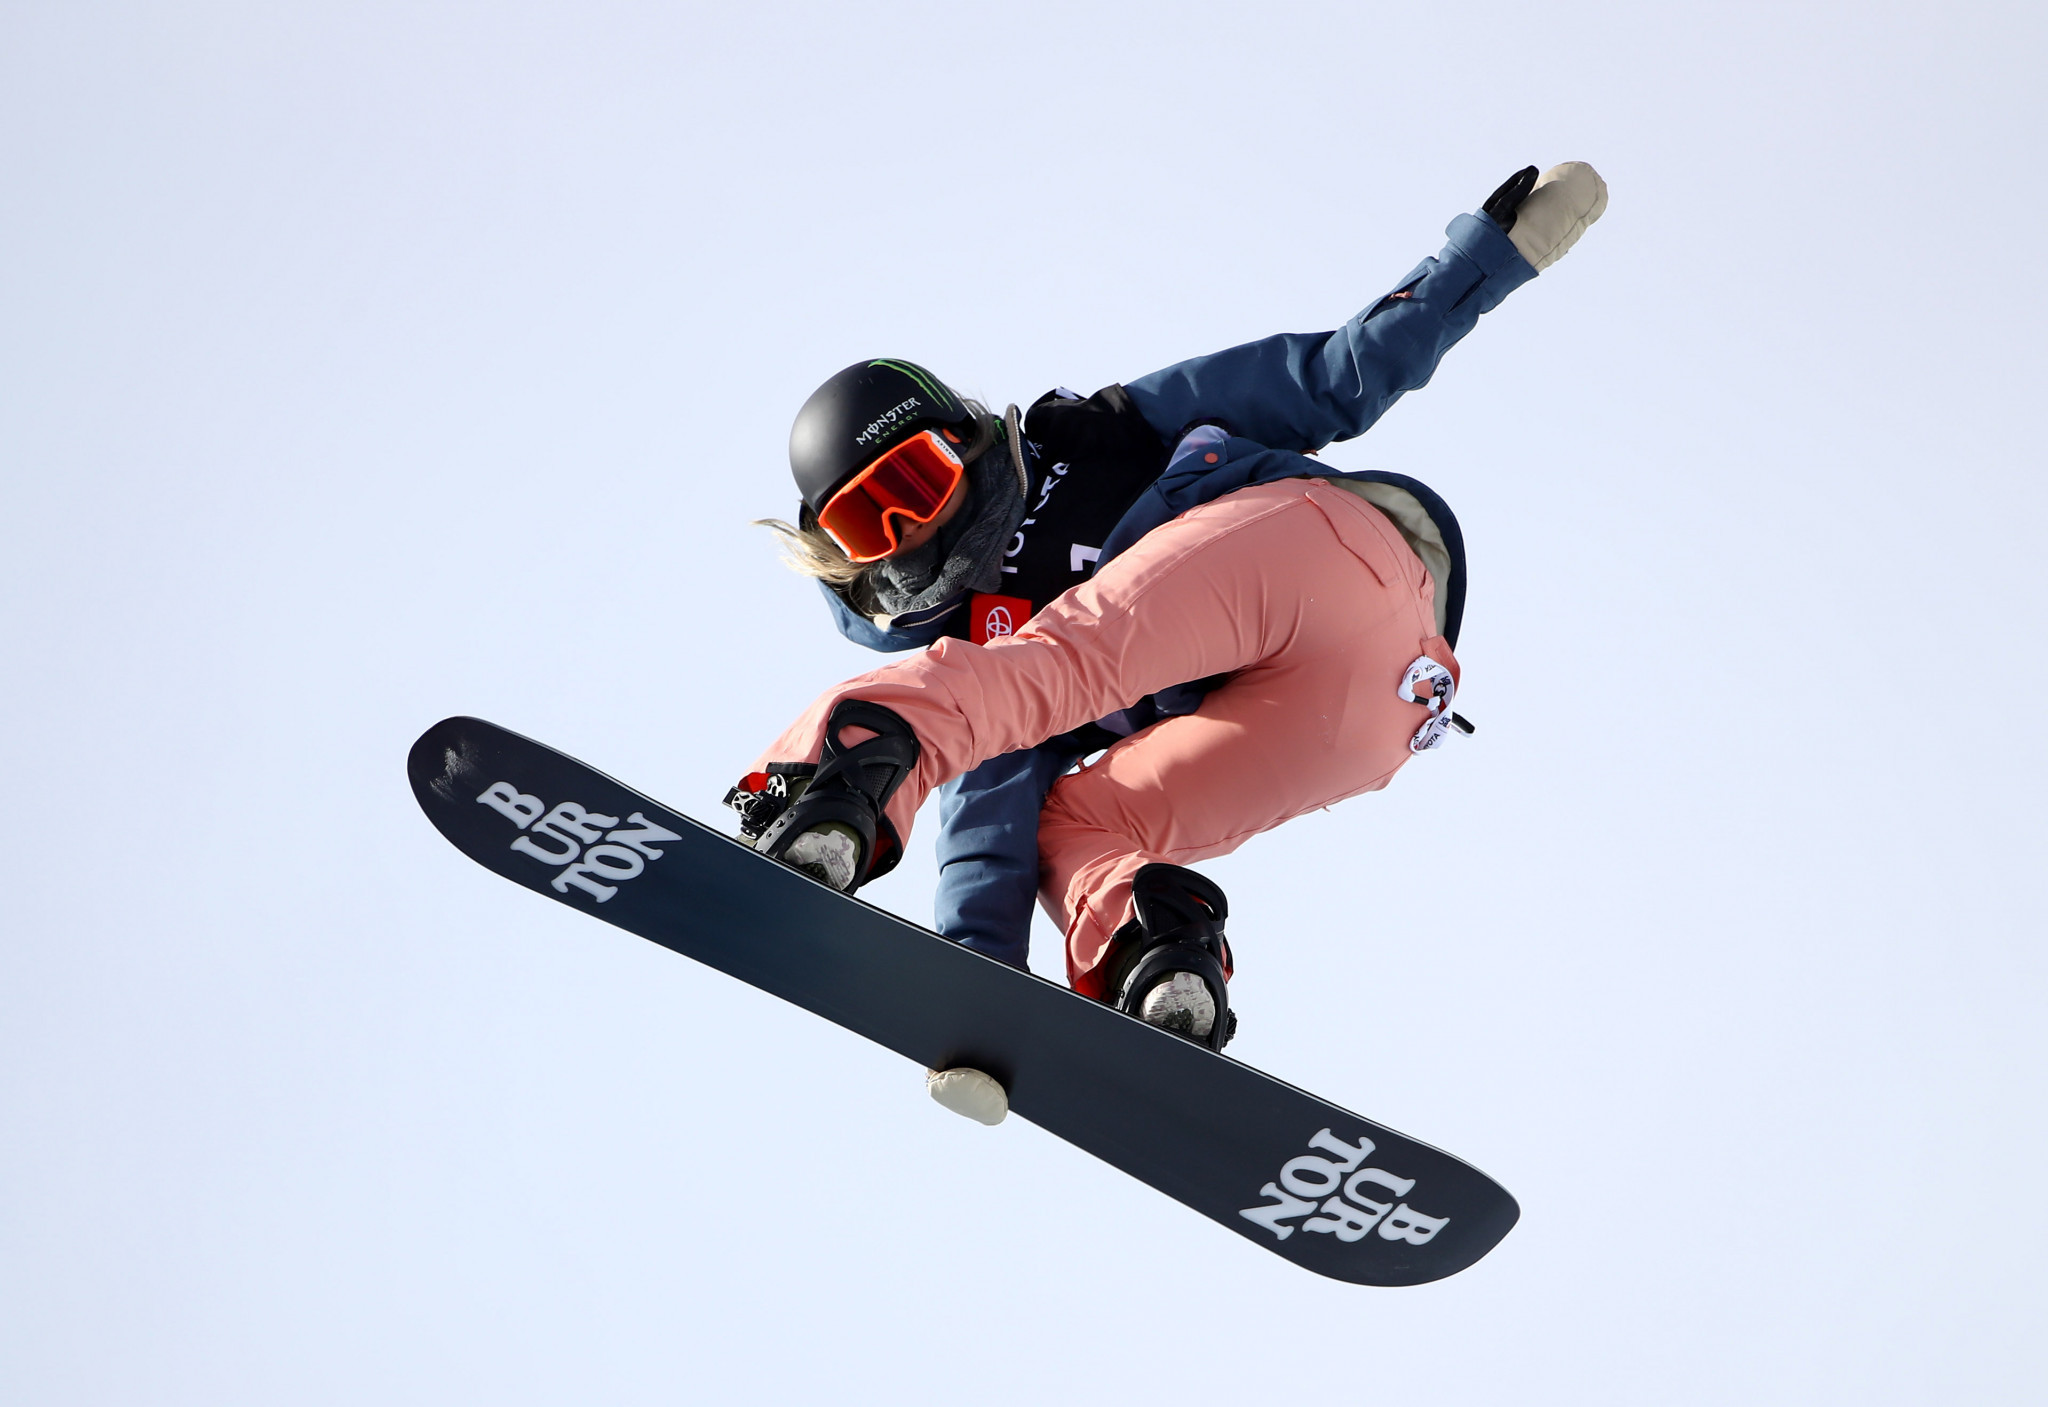 Kim adds to growing collection of titles with halfpipe victory at Freestyle Ski and Snowboard World Championships